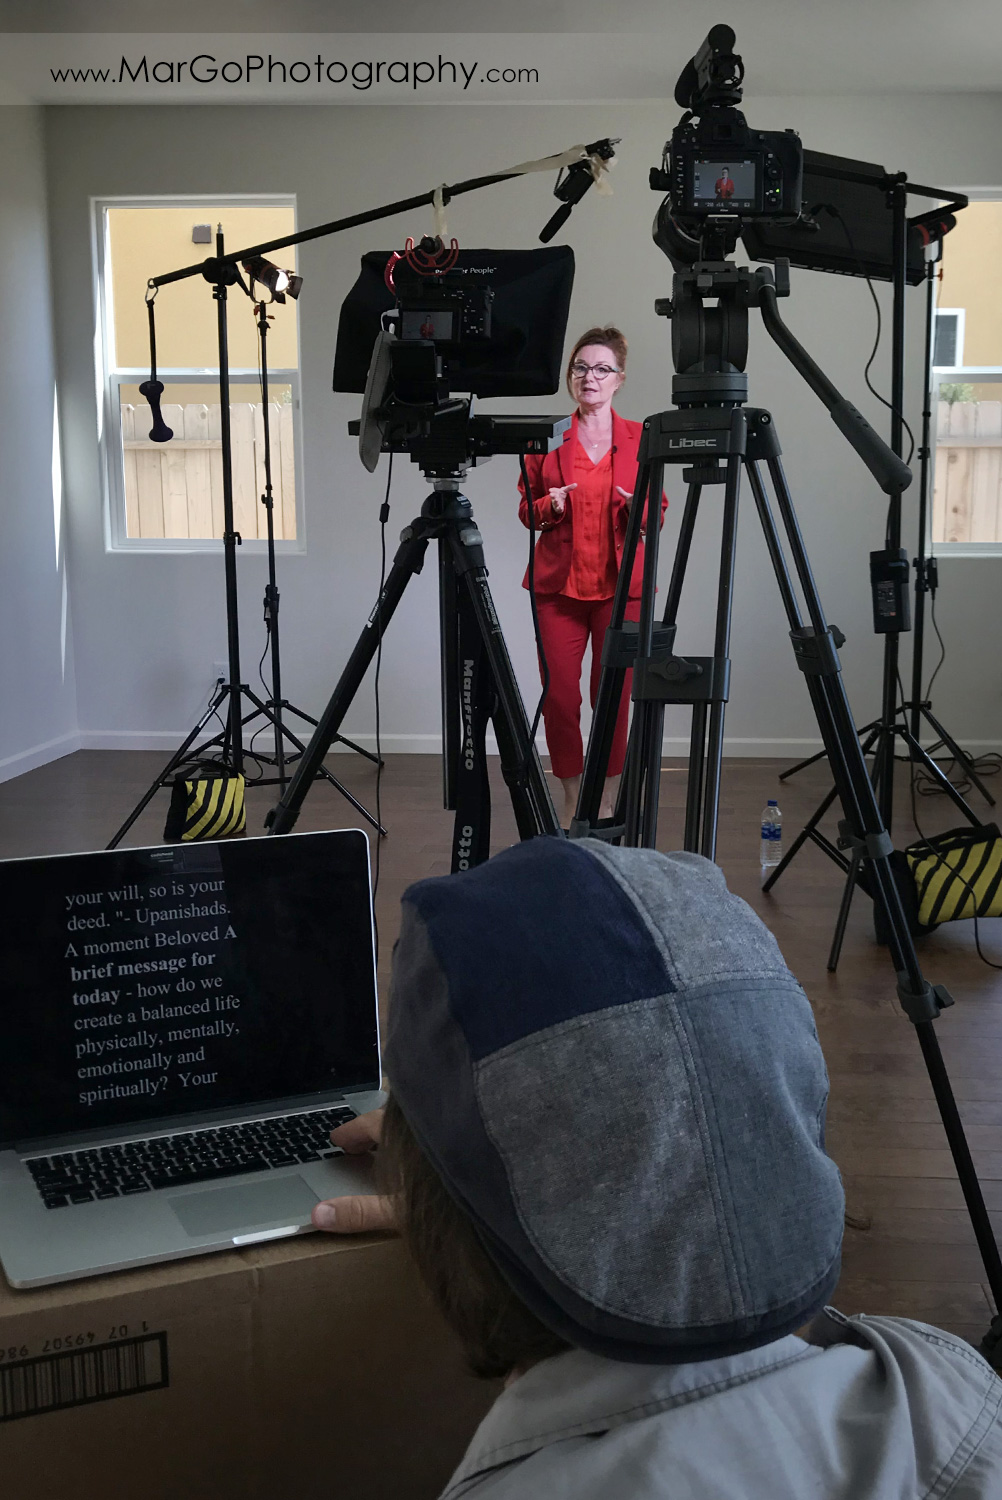 behind the scenes of two cameras setup indoor filming woman speaker in red suit and videographer running teleprompter